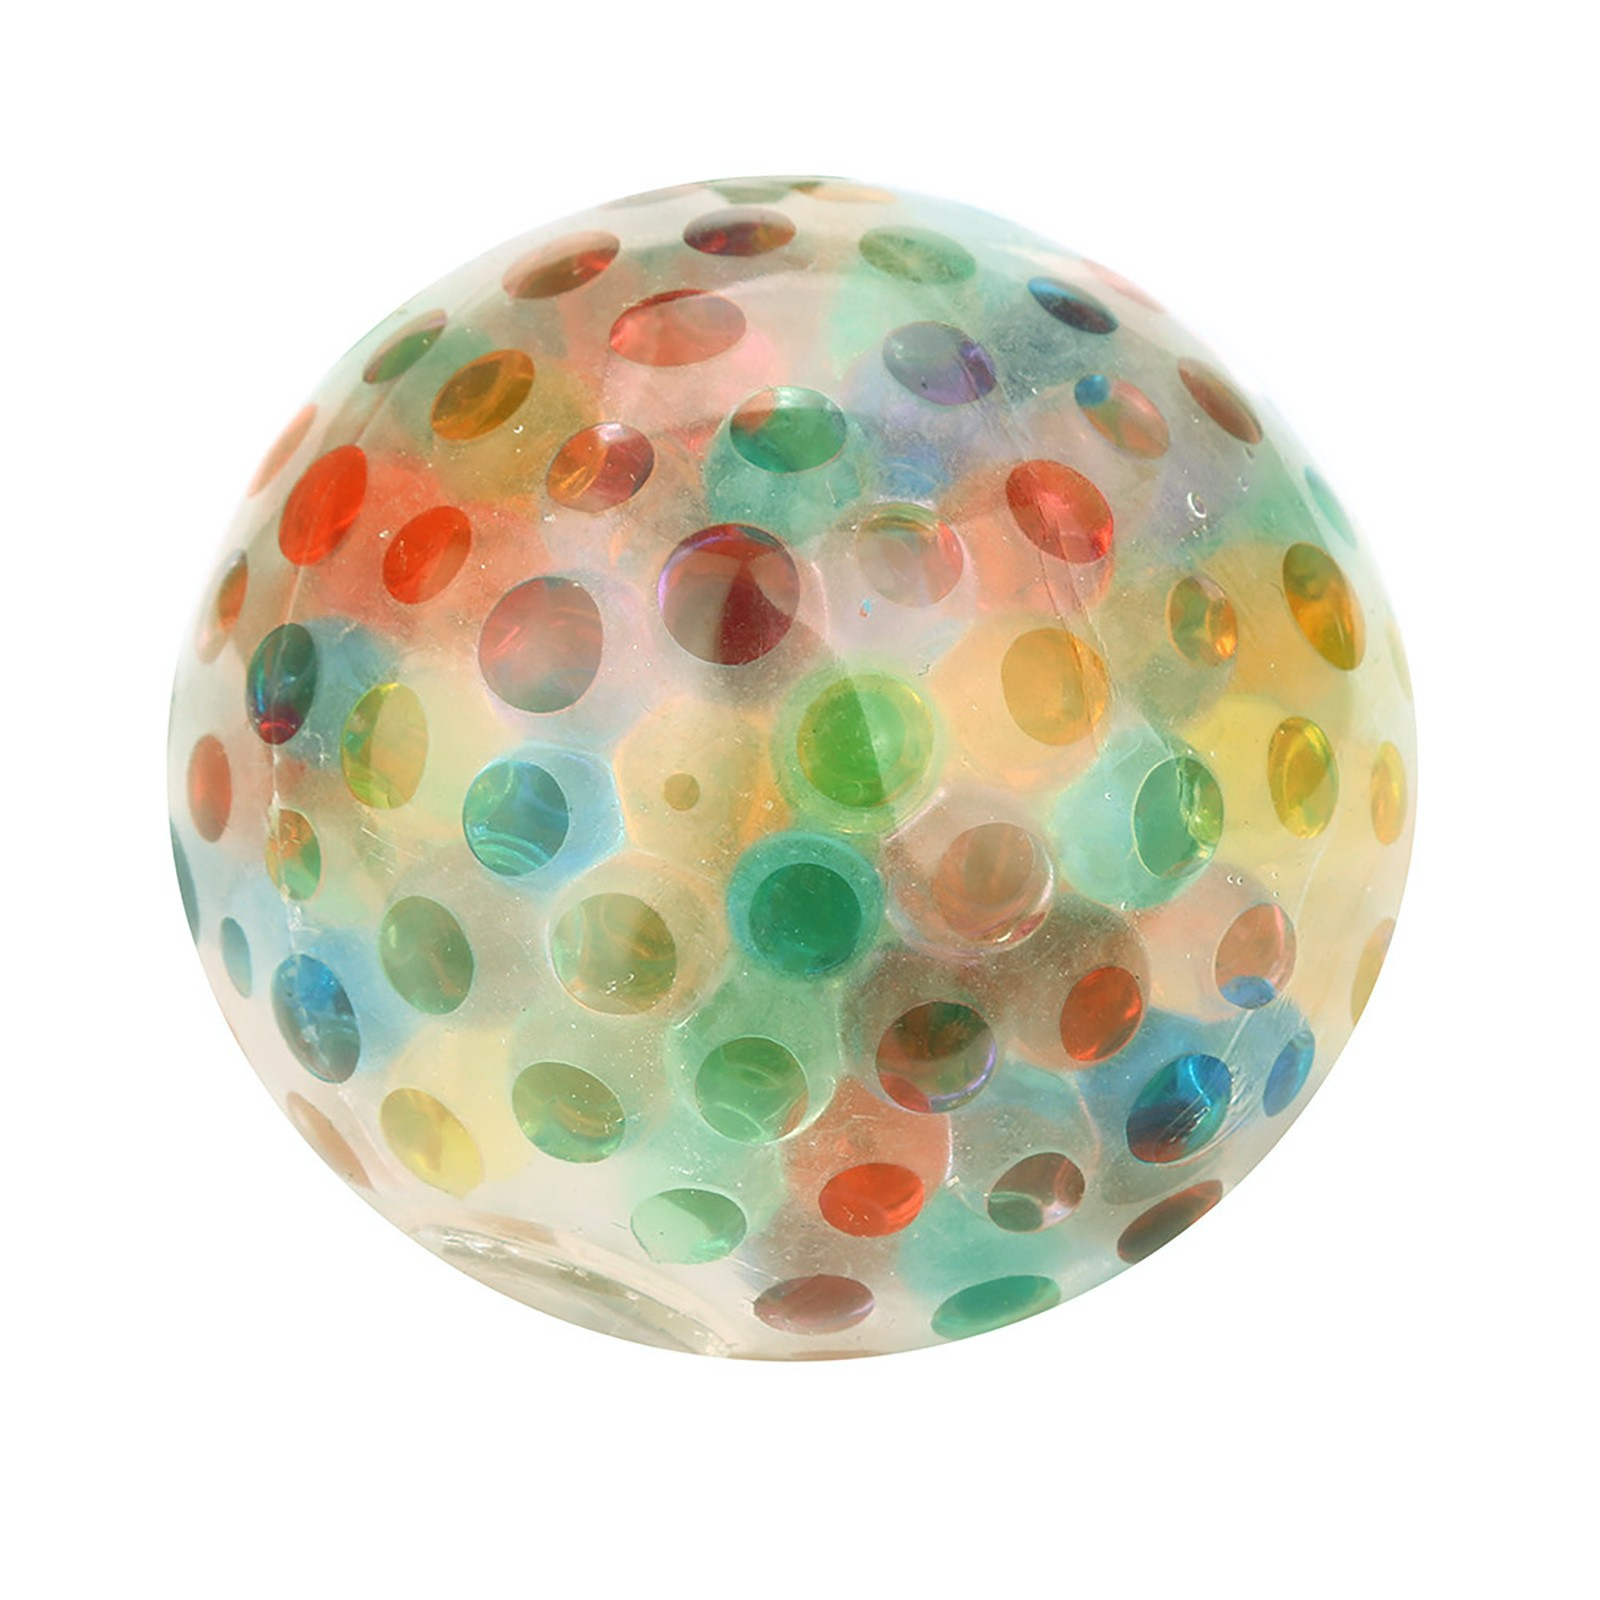 Squishy Toy Stress-Ball Squeezable-Stress Bead Spongy Hot-Sale img5